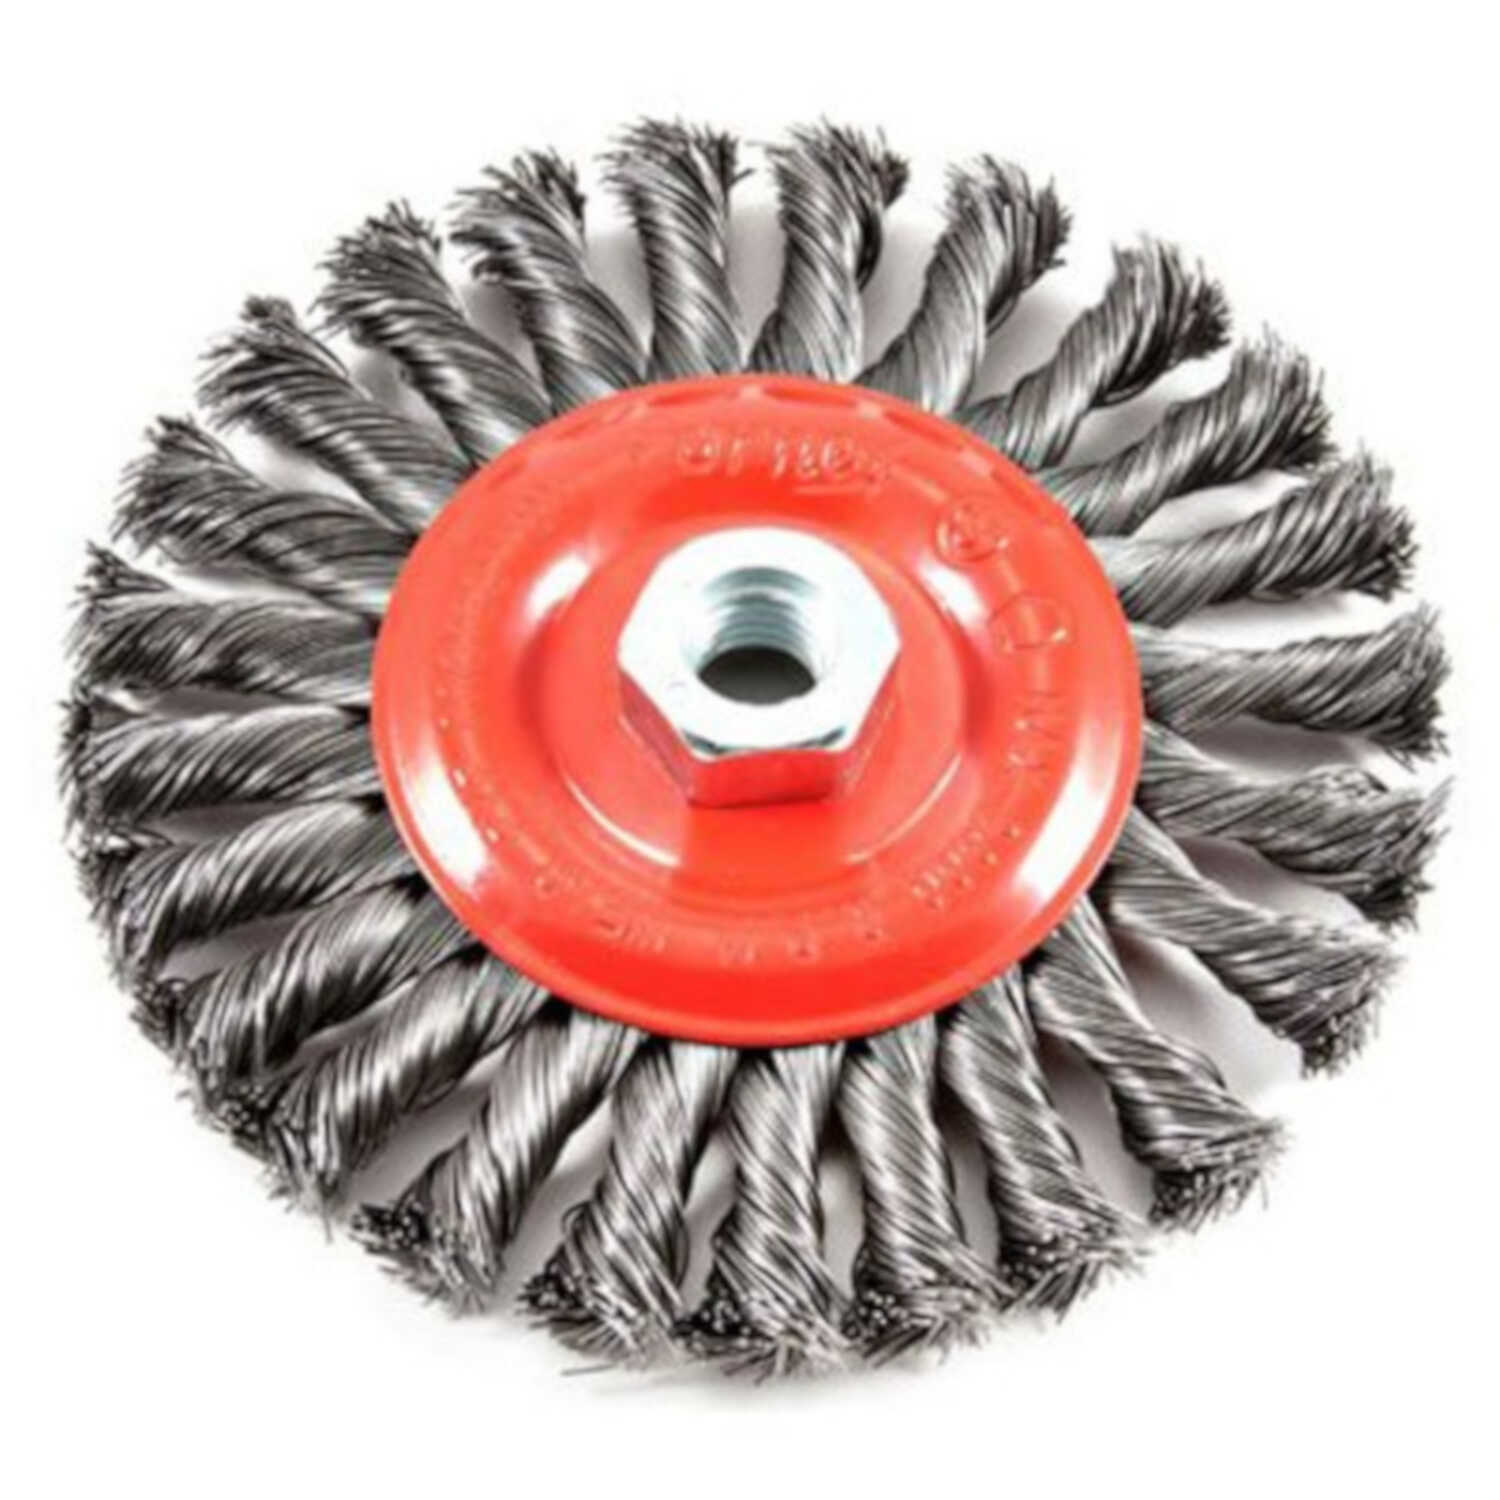 Forney  6 in. Crimped  Wire Wheel Brush  Metal  1 pc. 9000 rpm